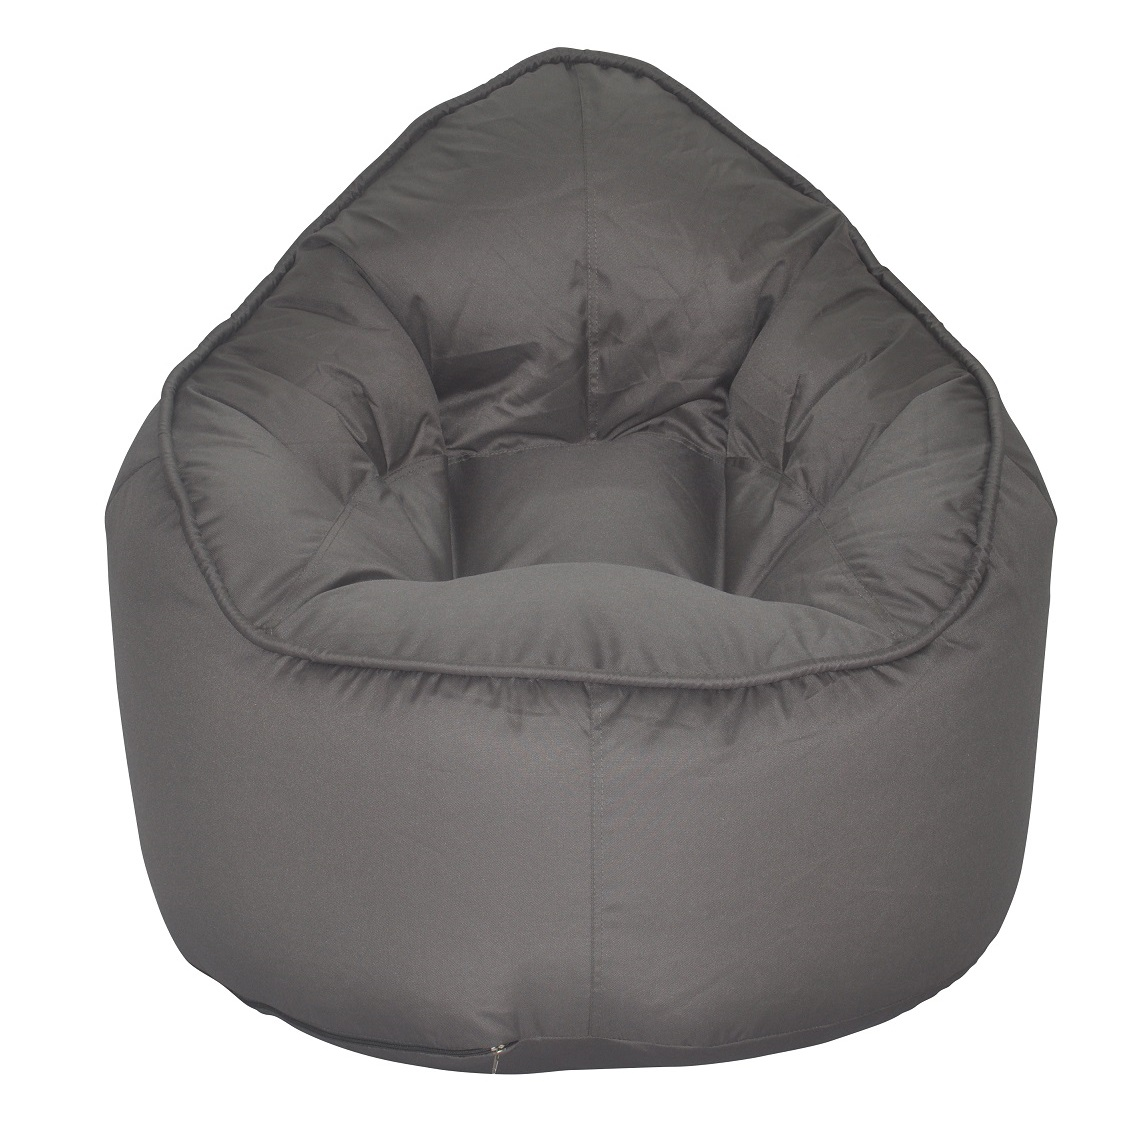 Fantastic The Pod Bean Bag Chair Grey Unemploymentrelief Wooden Chair Designs For Living Room Unemploymentrelieforg